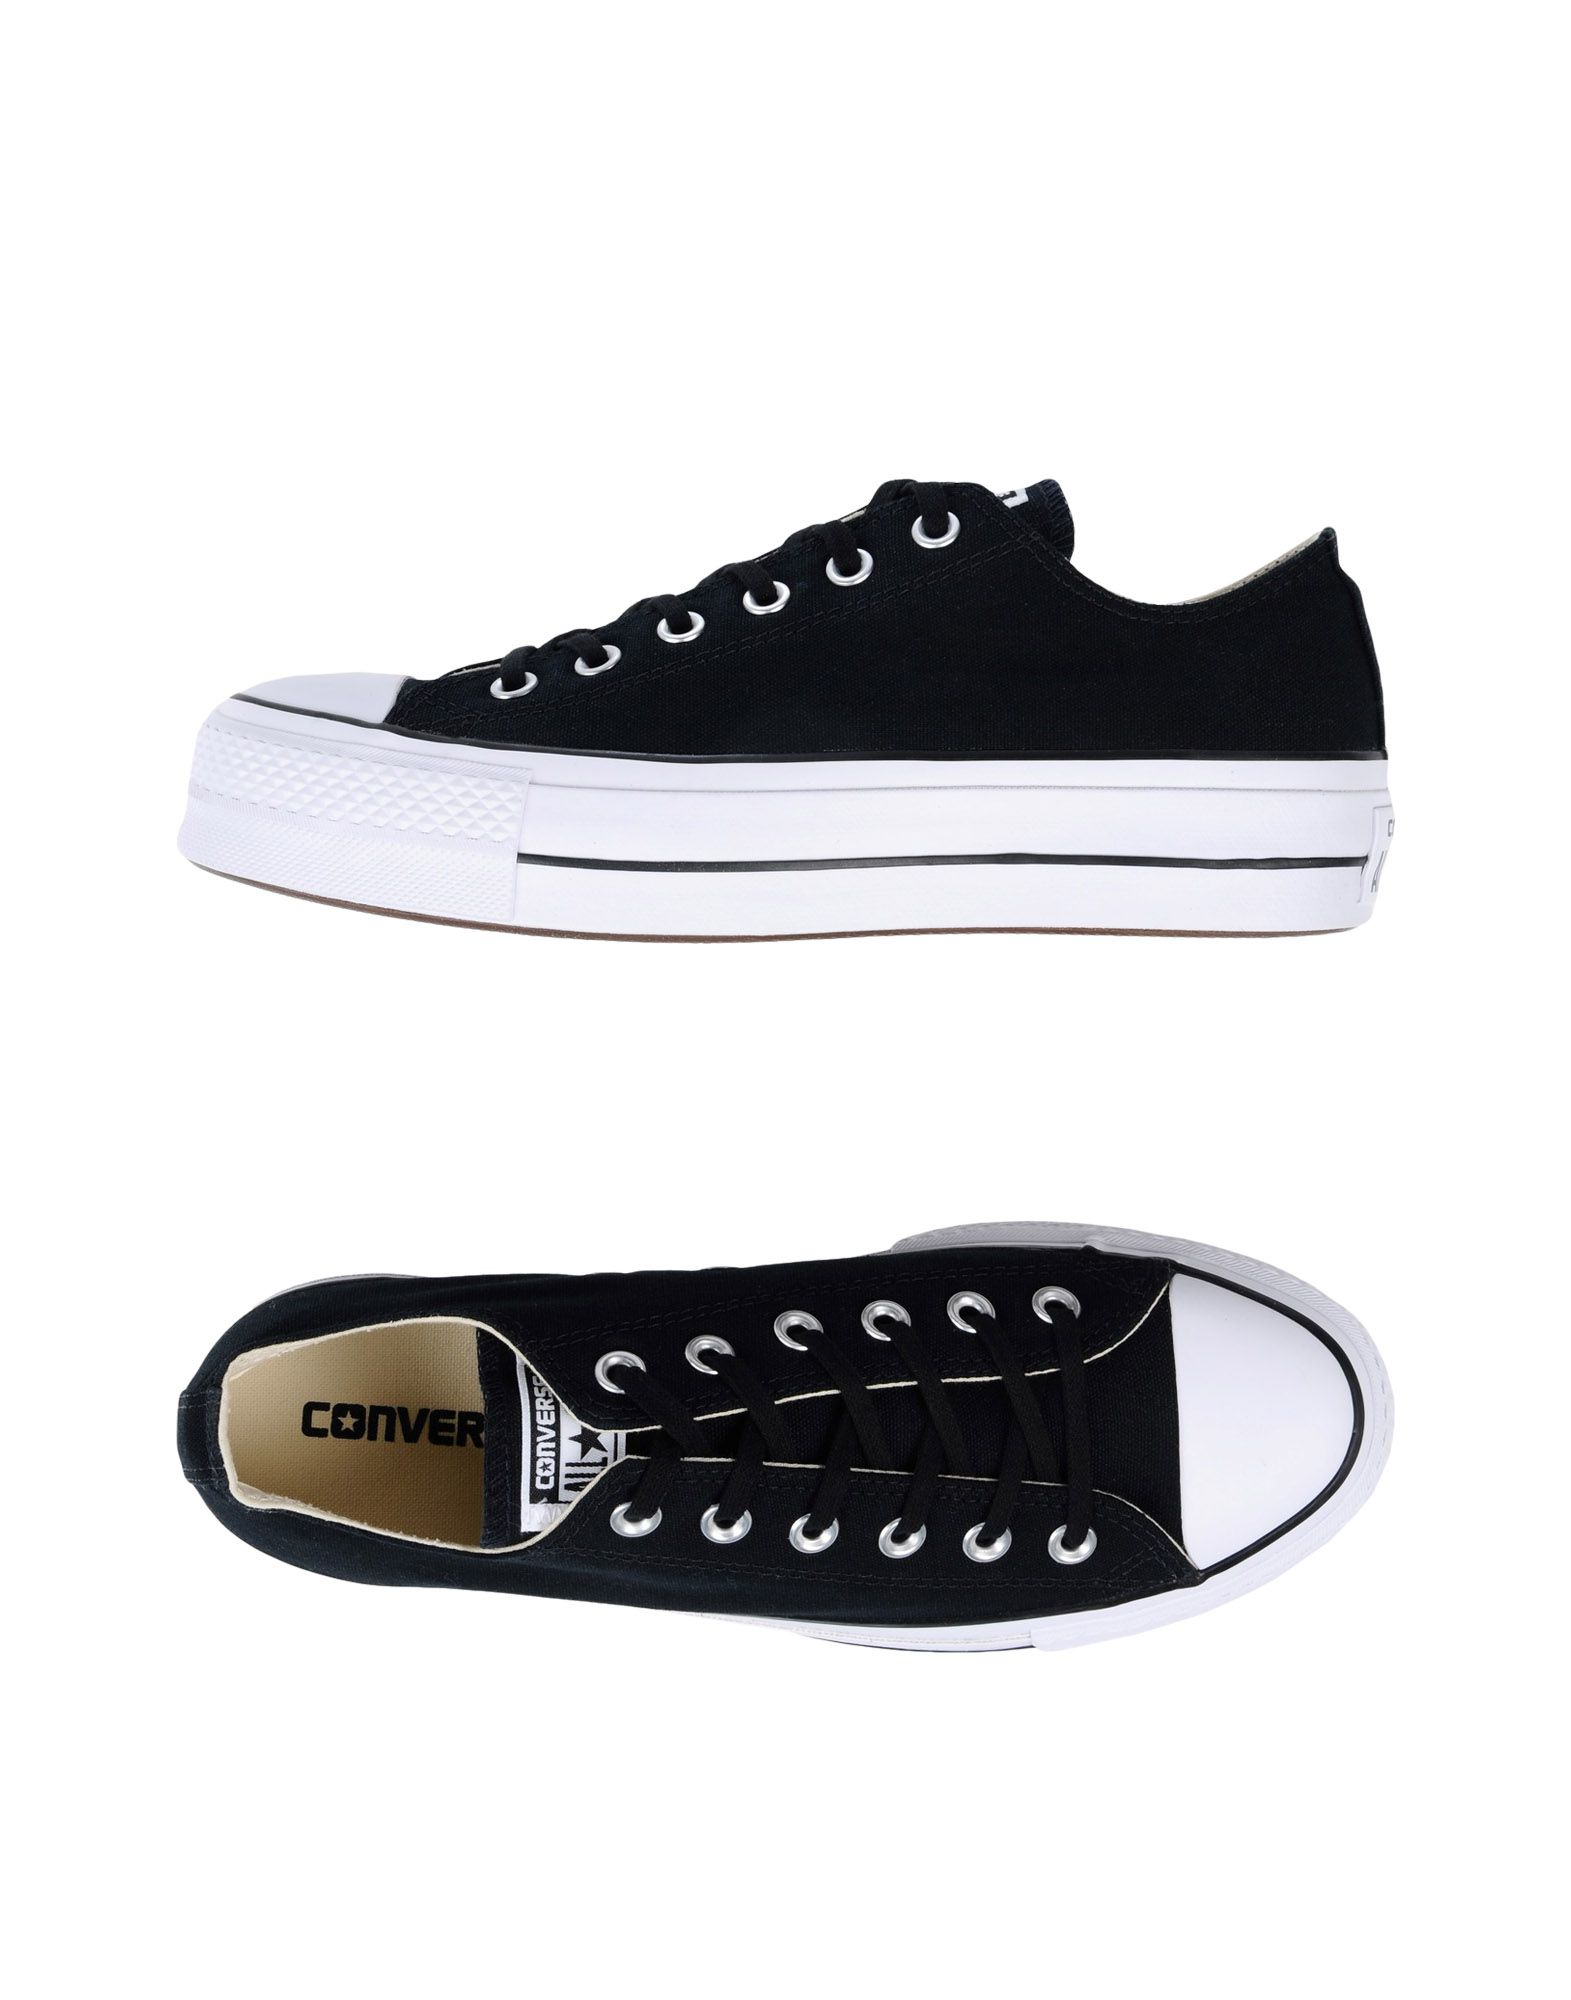 Baskets Converse All Star Ctas Ox Lift Clean Core Canvas - Femme - Baskets Converse All Star Noir Chaussures casual sauvages